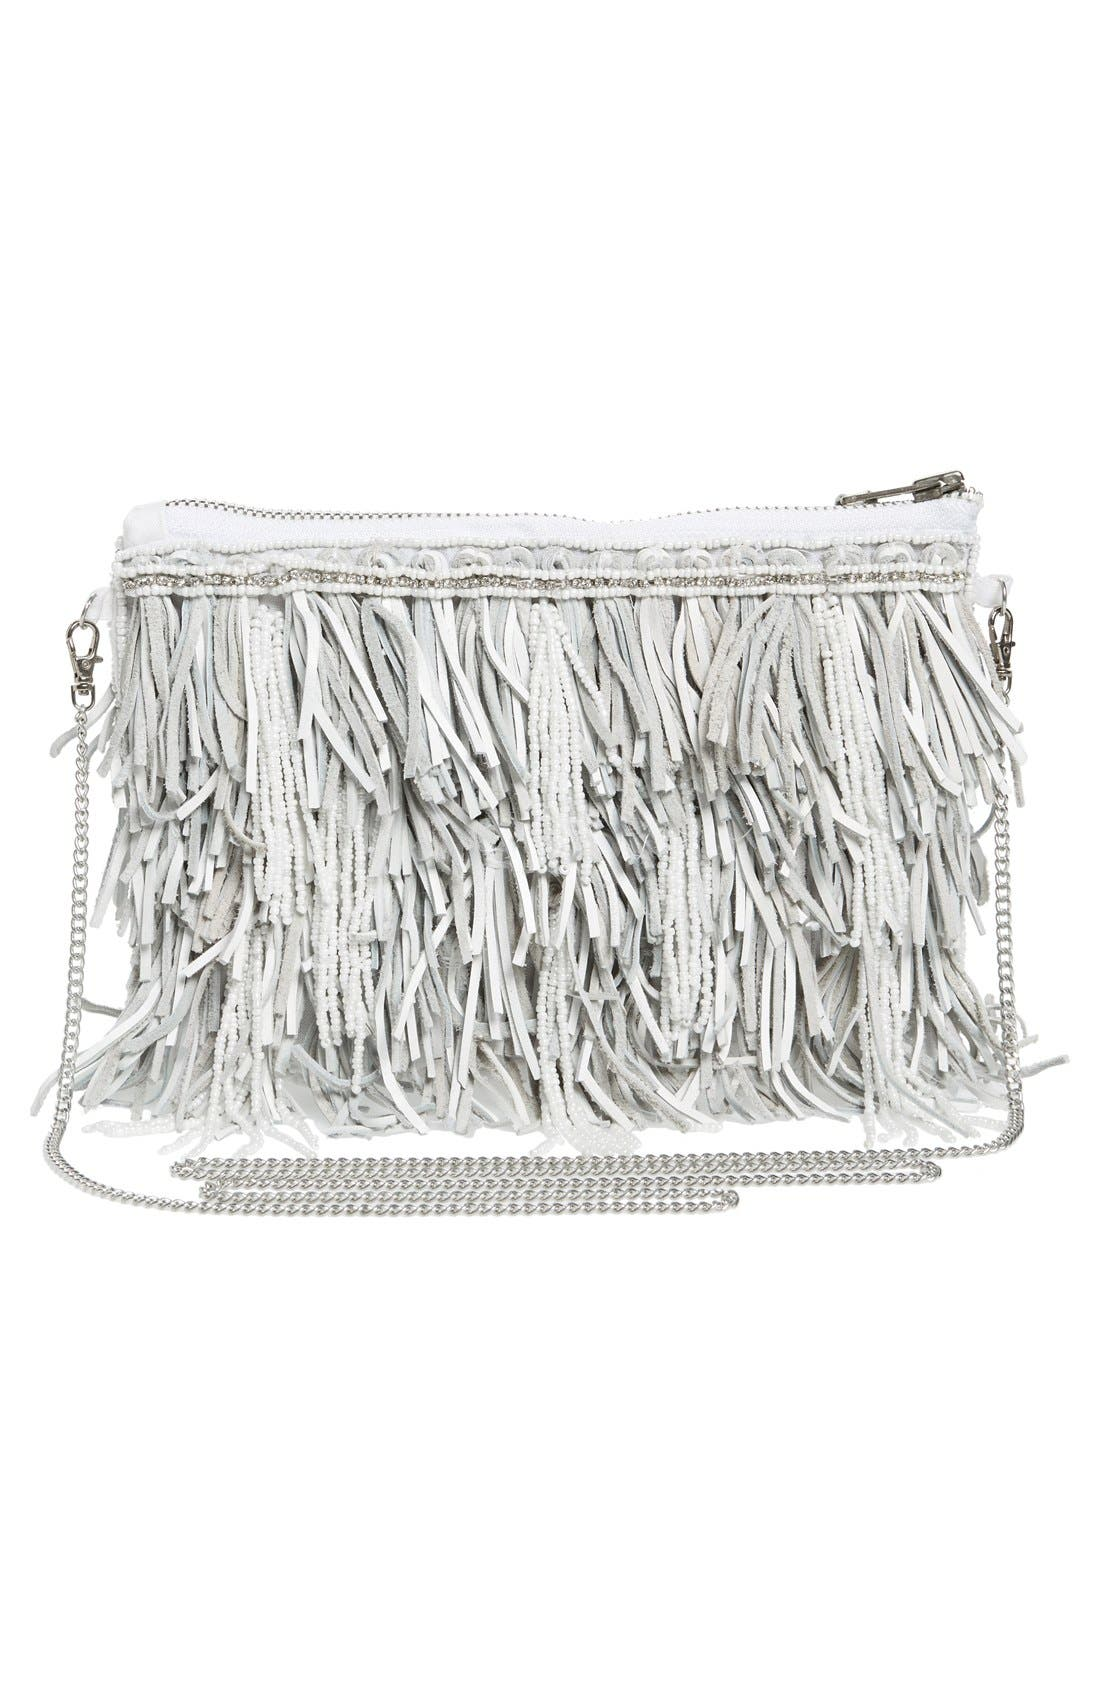 Alternate Image 3  - G-lish Bead & Leather Fringe Crossbody Bag